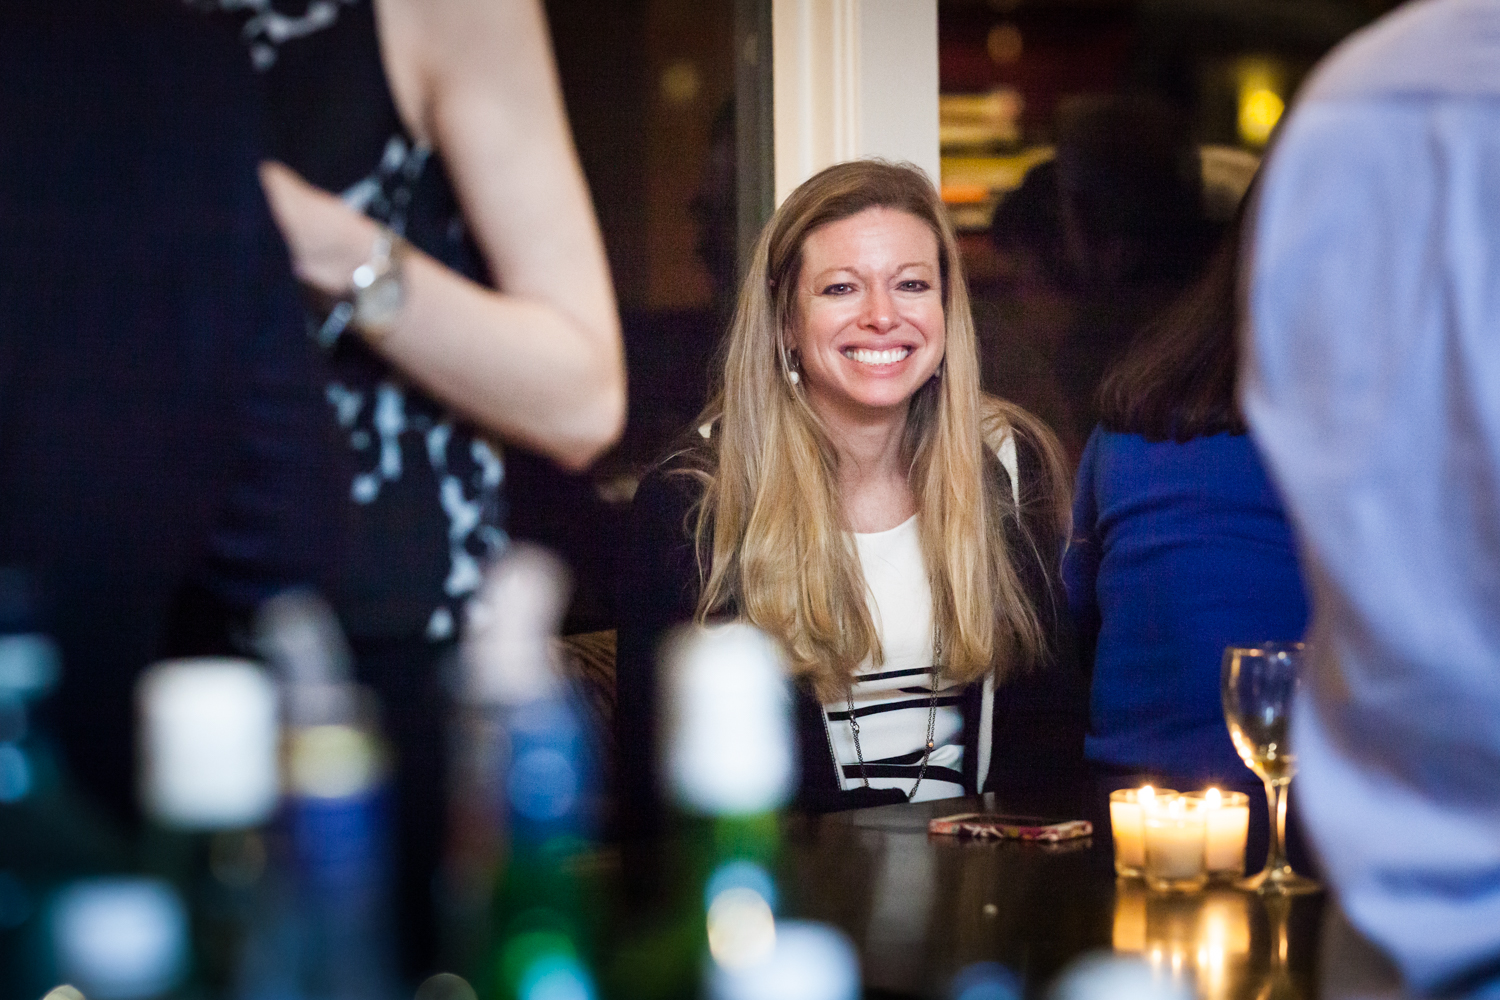 Birthday party photos of woman with blond hair smiling over bar